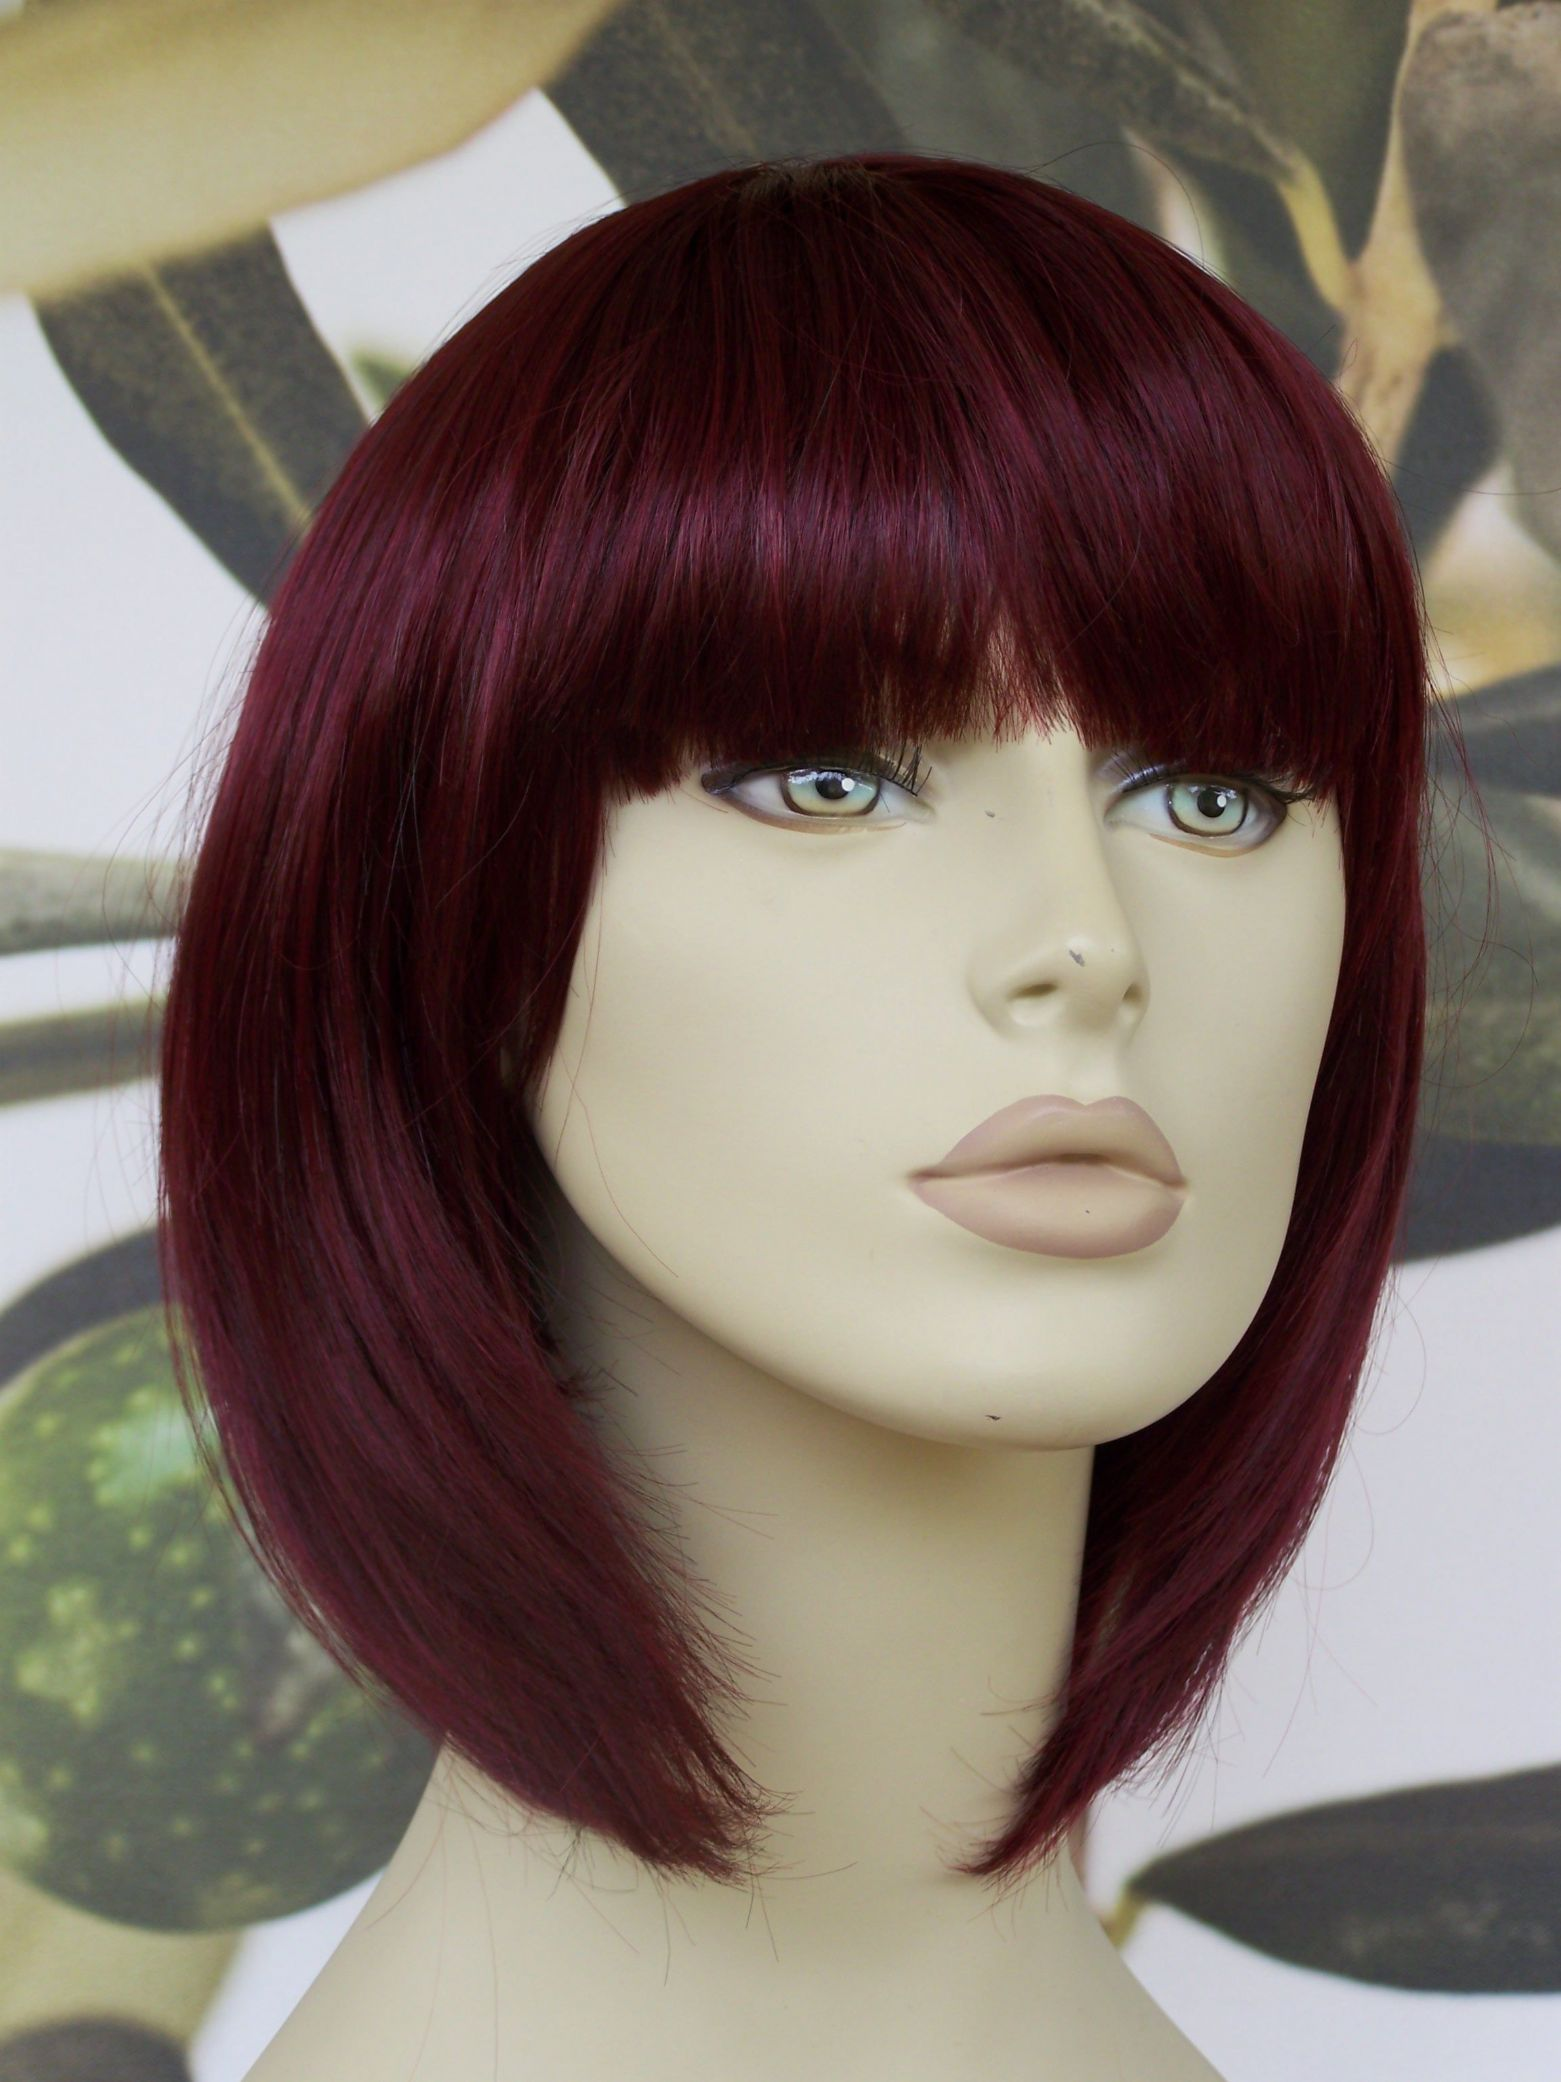 Wigsredhair write an online review and share your thoughts with